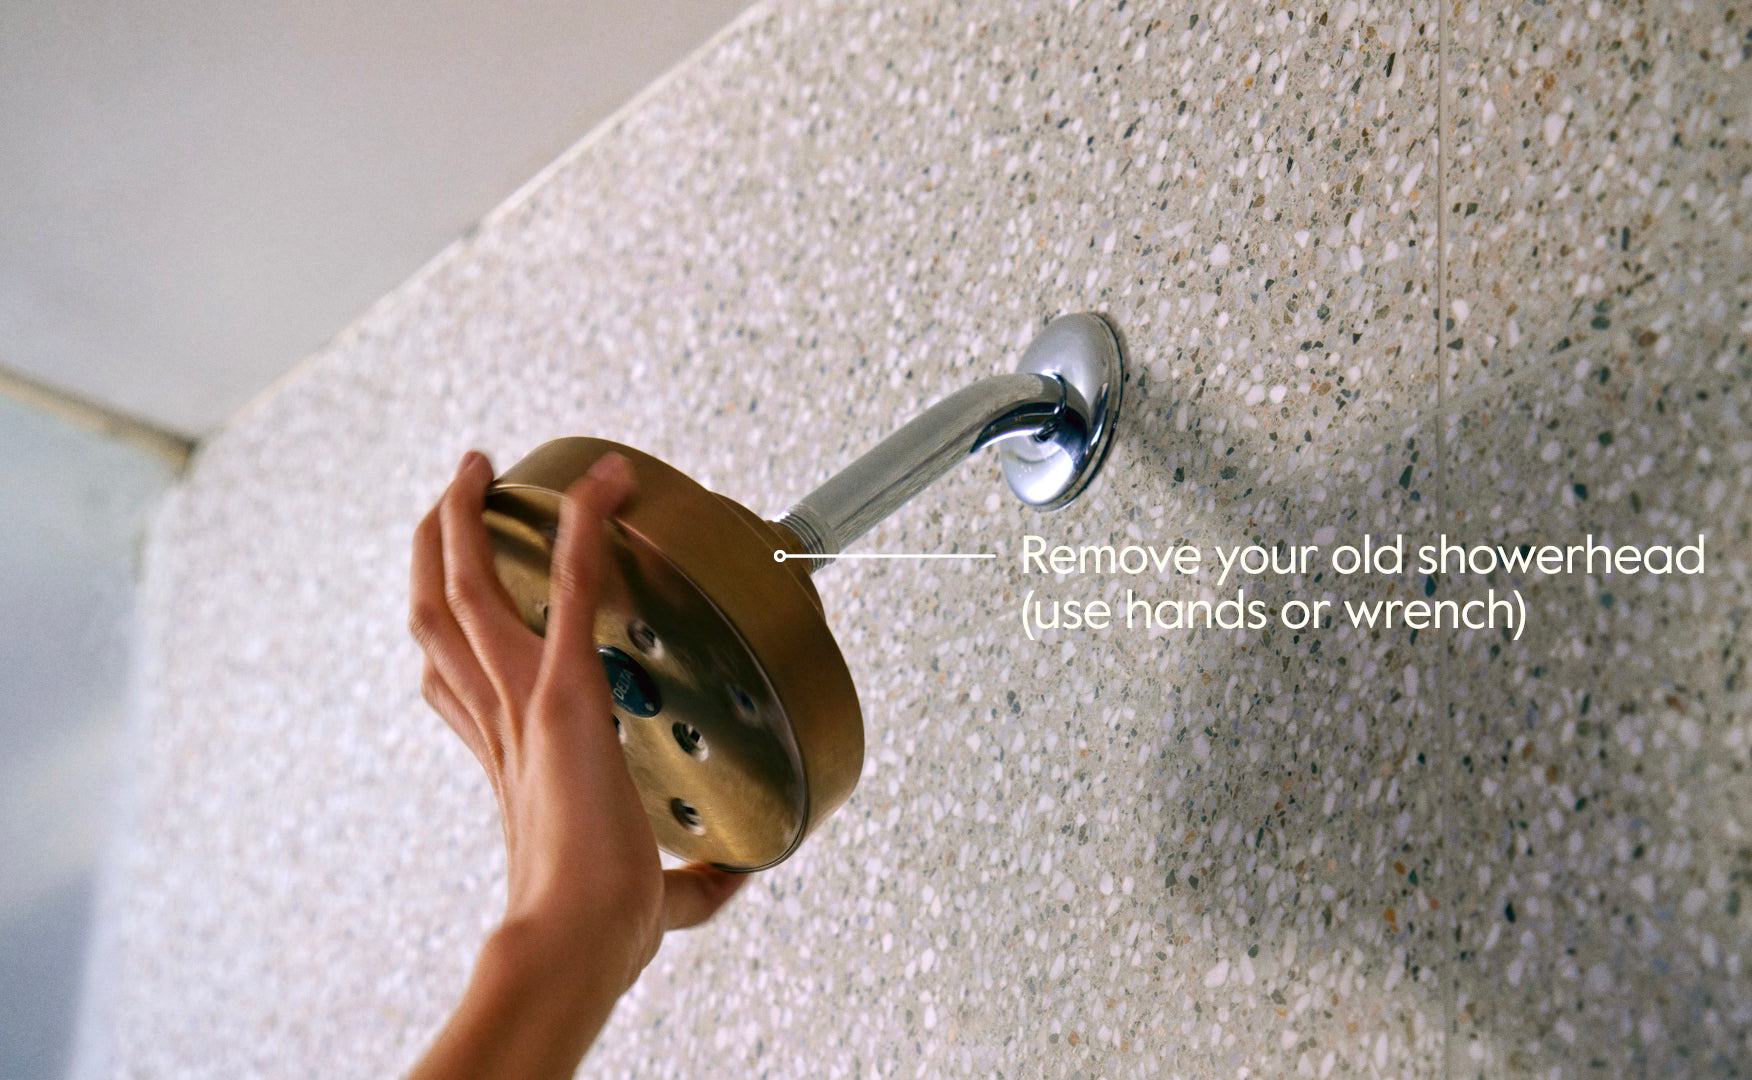 Removing old gold showerhead